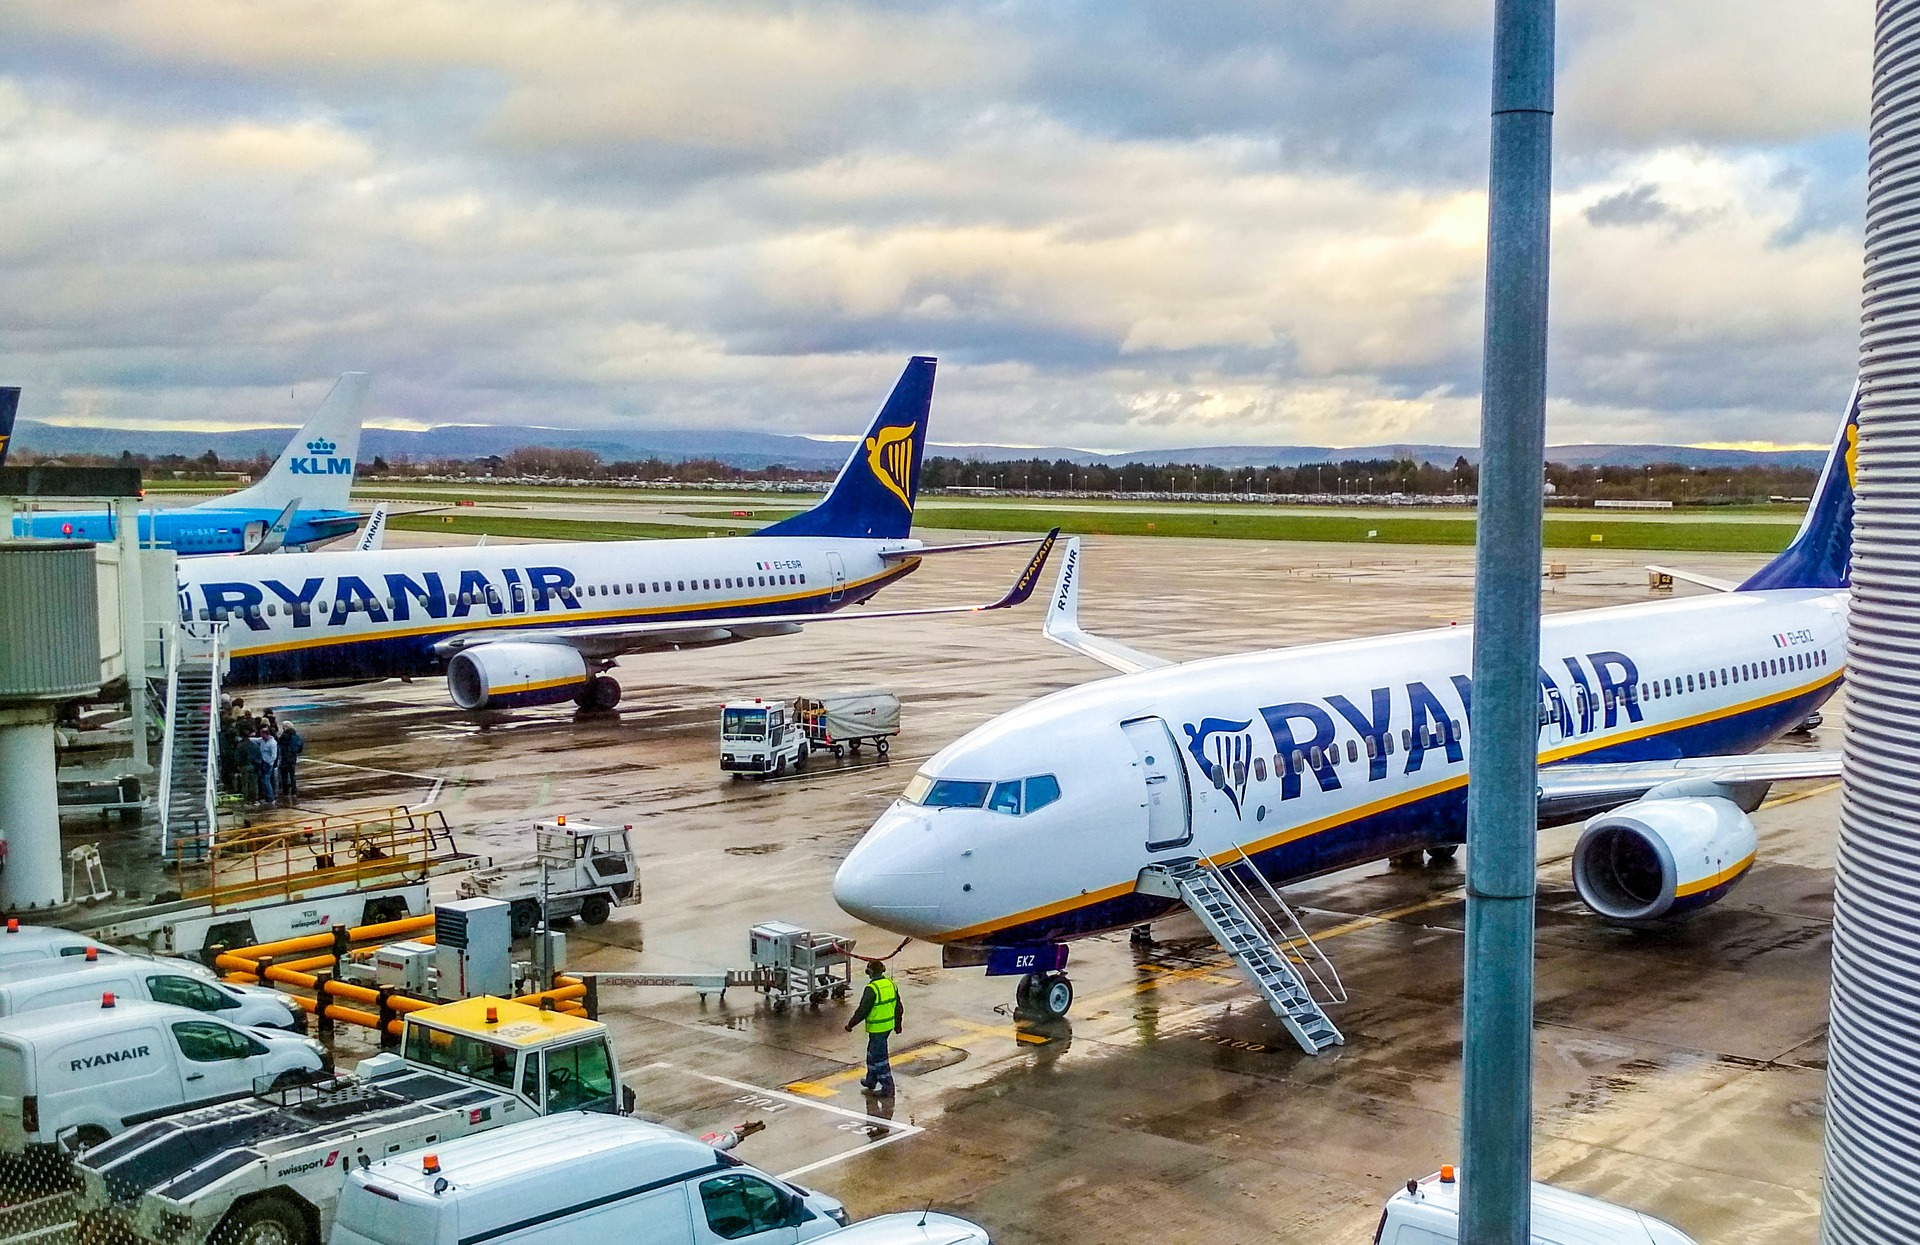 Ryanair stock price pops as airliner plans to resume 40% of July flights